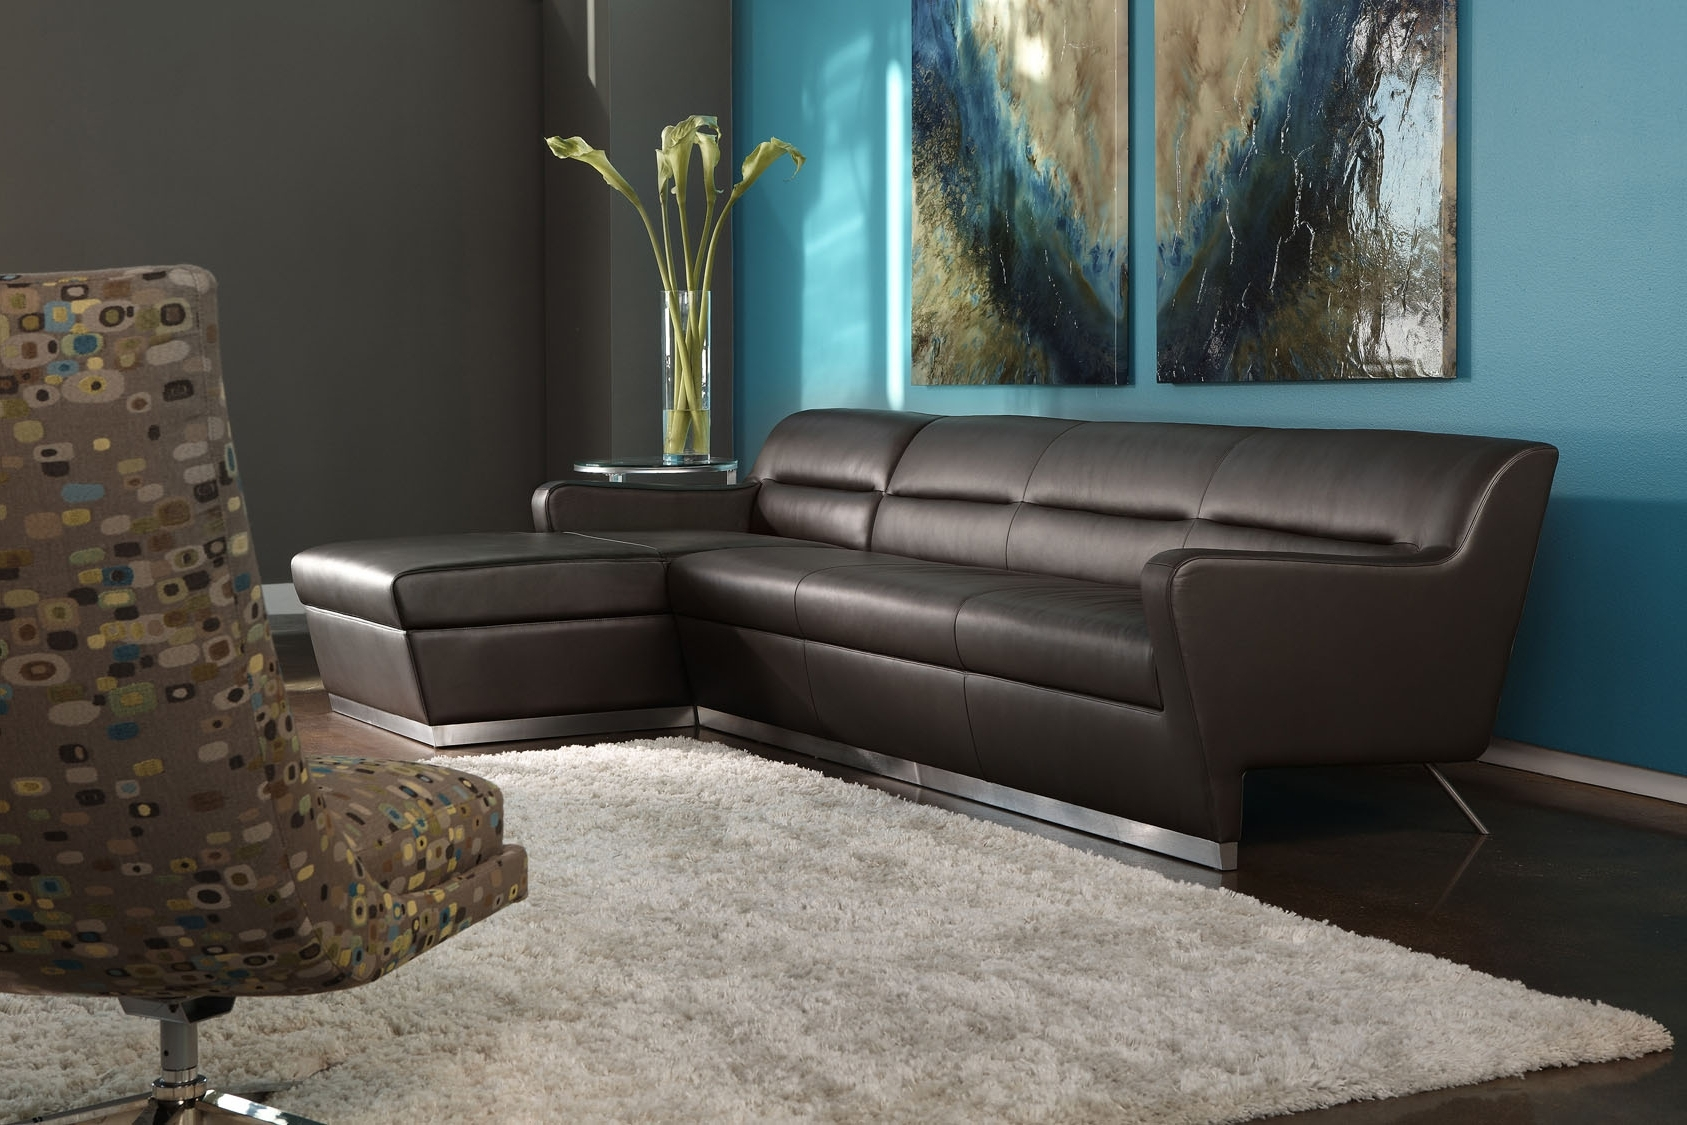 Niagara Sectional Sofas For Most Current American Leather Niagara Sectional Sofa (View 9 of 20)